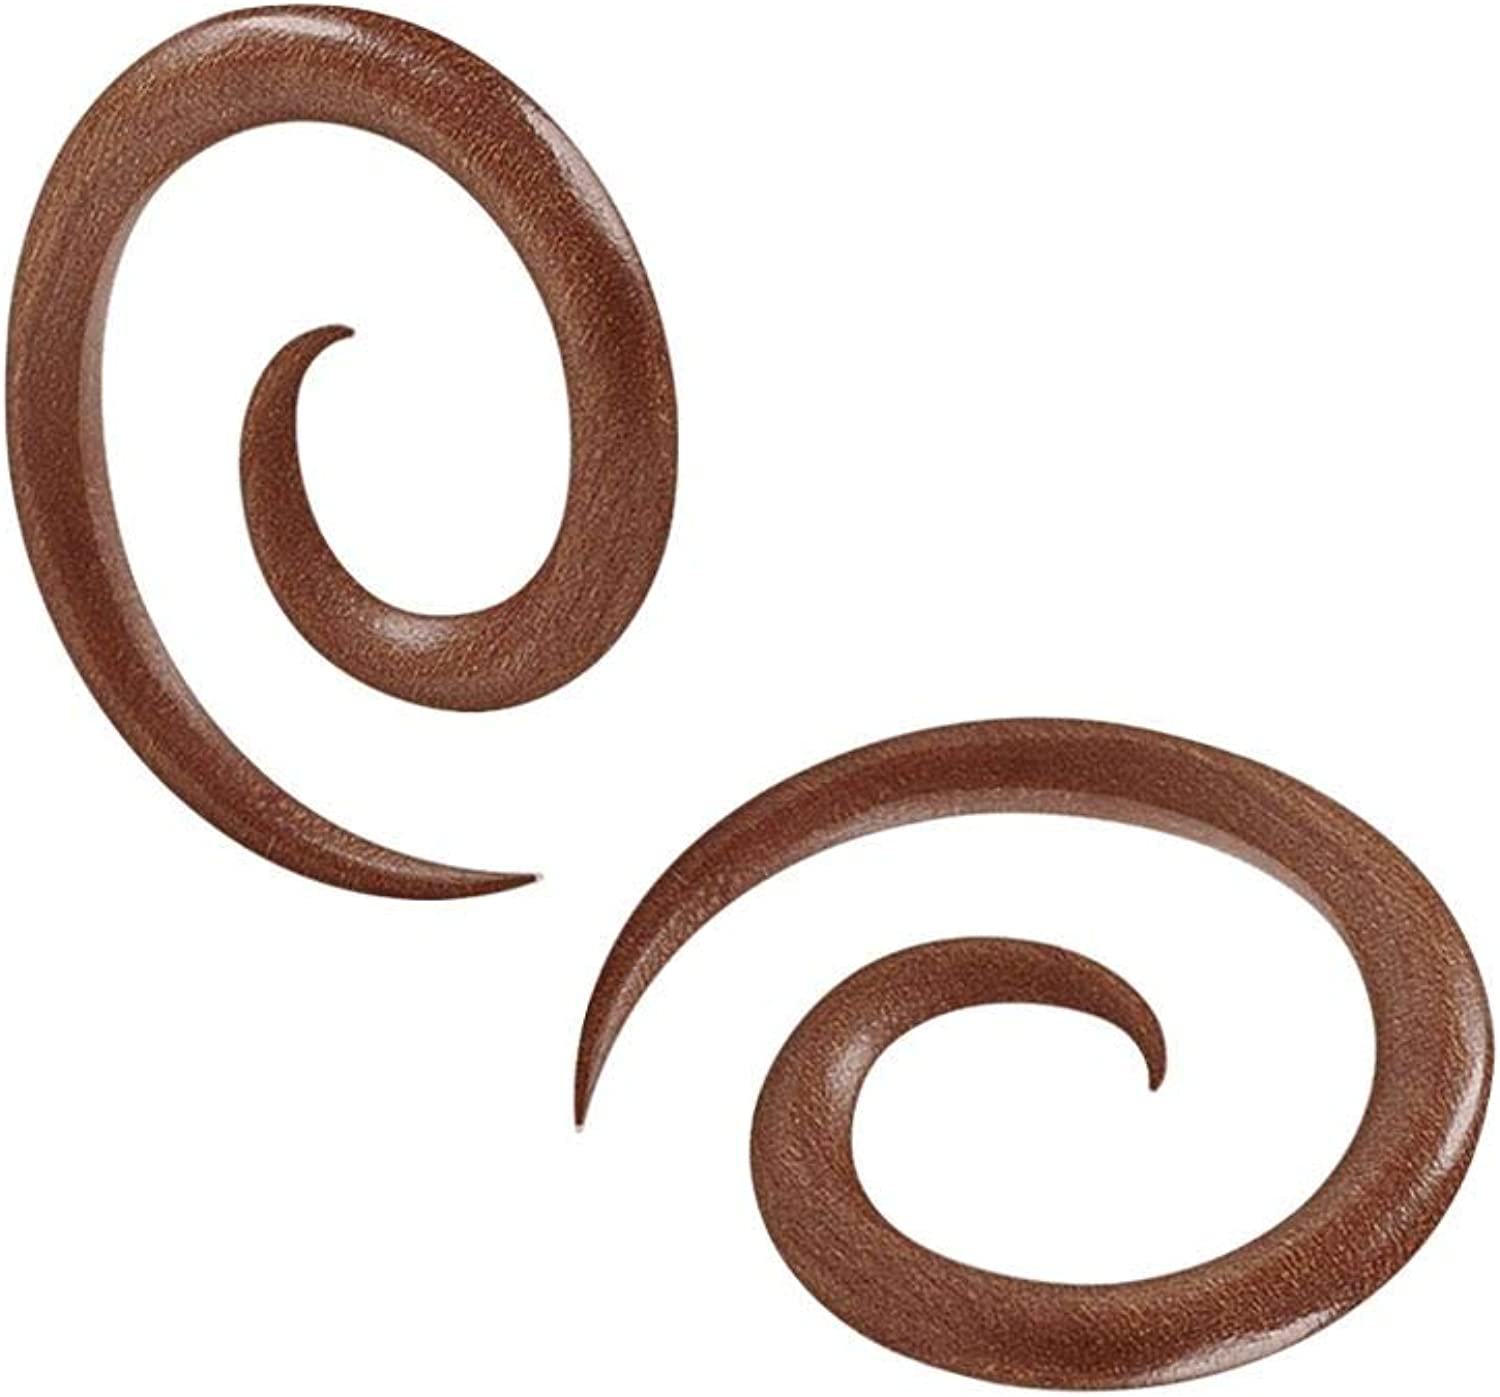 BanaVega 2PCS Flesh Sawo Wood Taper Ear Coil Spiral Earrin Special price for a limited time Overseas parallel import regular item